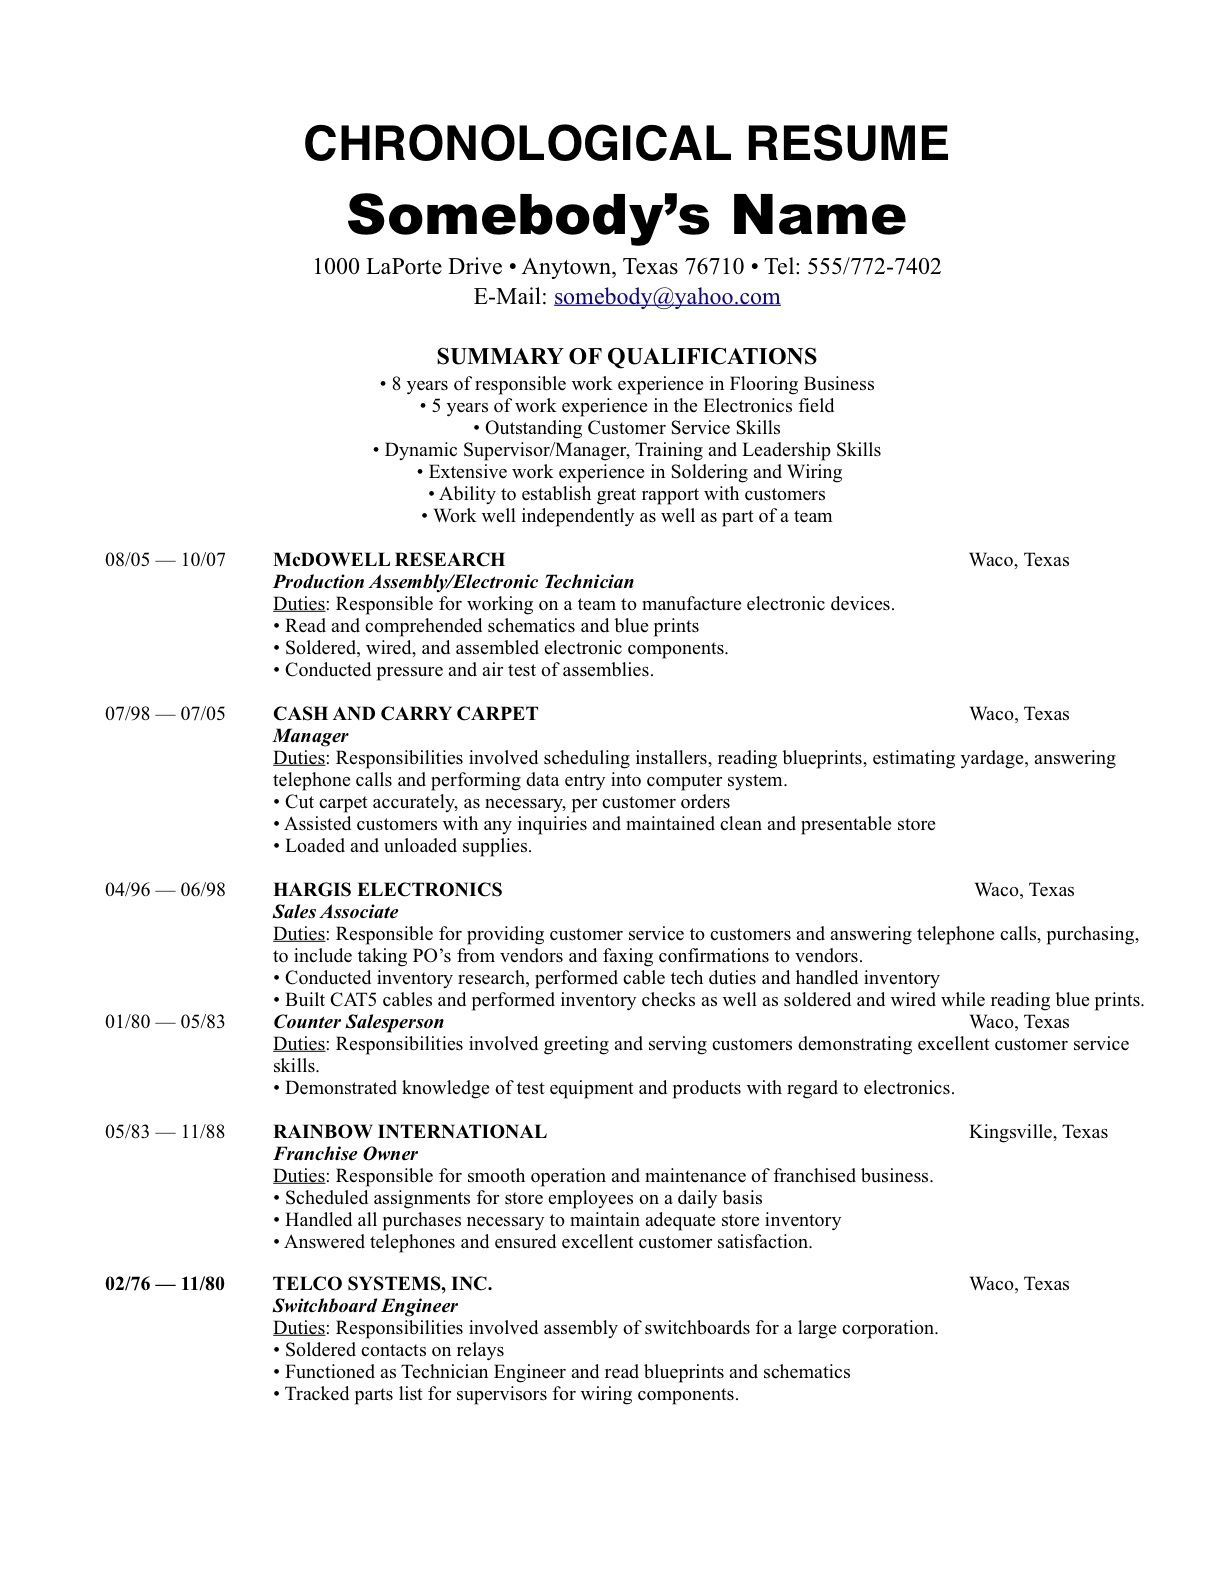 Resume Format Reverse Chronological #chronological #format #resume ...